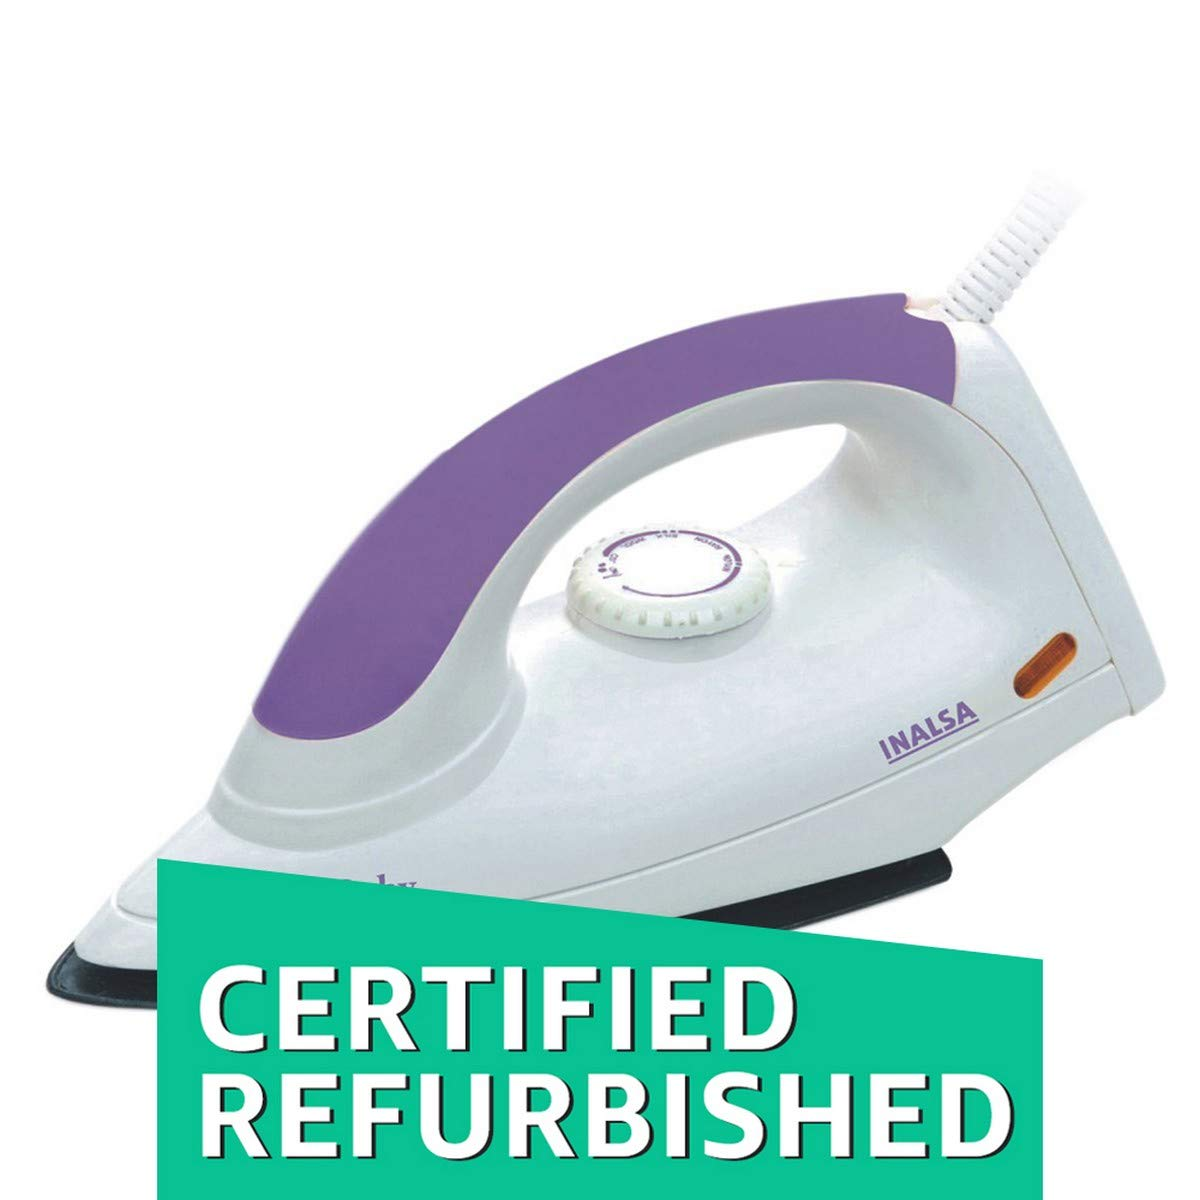 c7964873448 Buy (Certified REFURBISHED) Inalsa Ruby 1000-Watt Dry Iron (White) Online  at Low Prices in India - Amazon.in